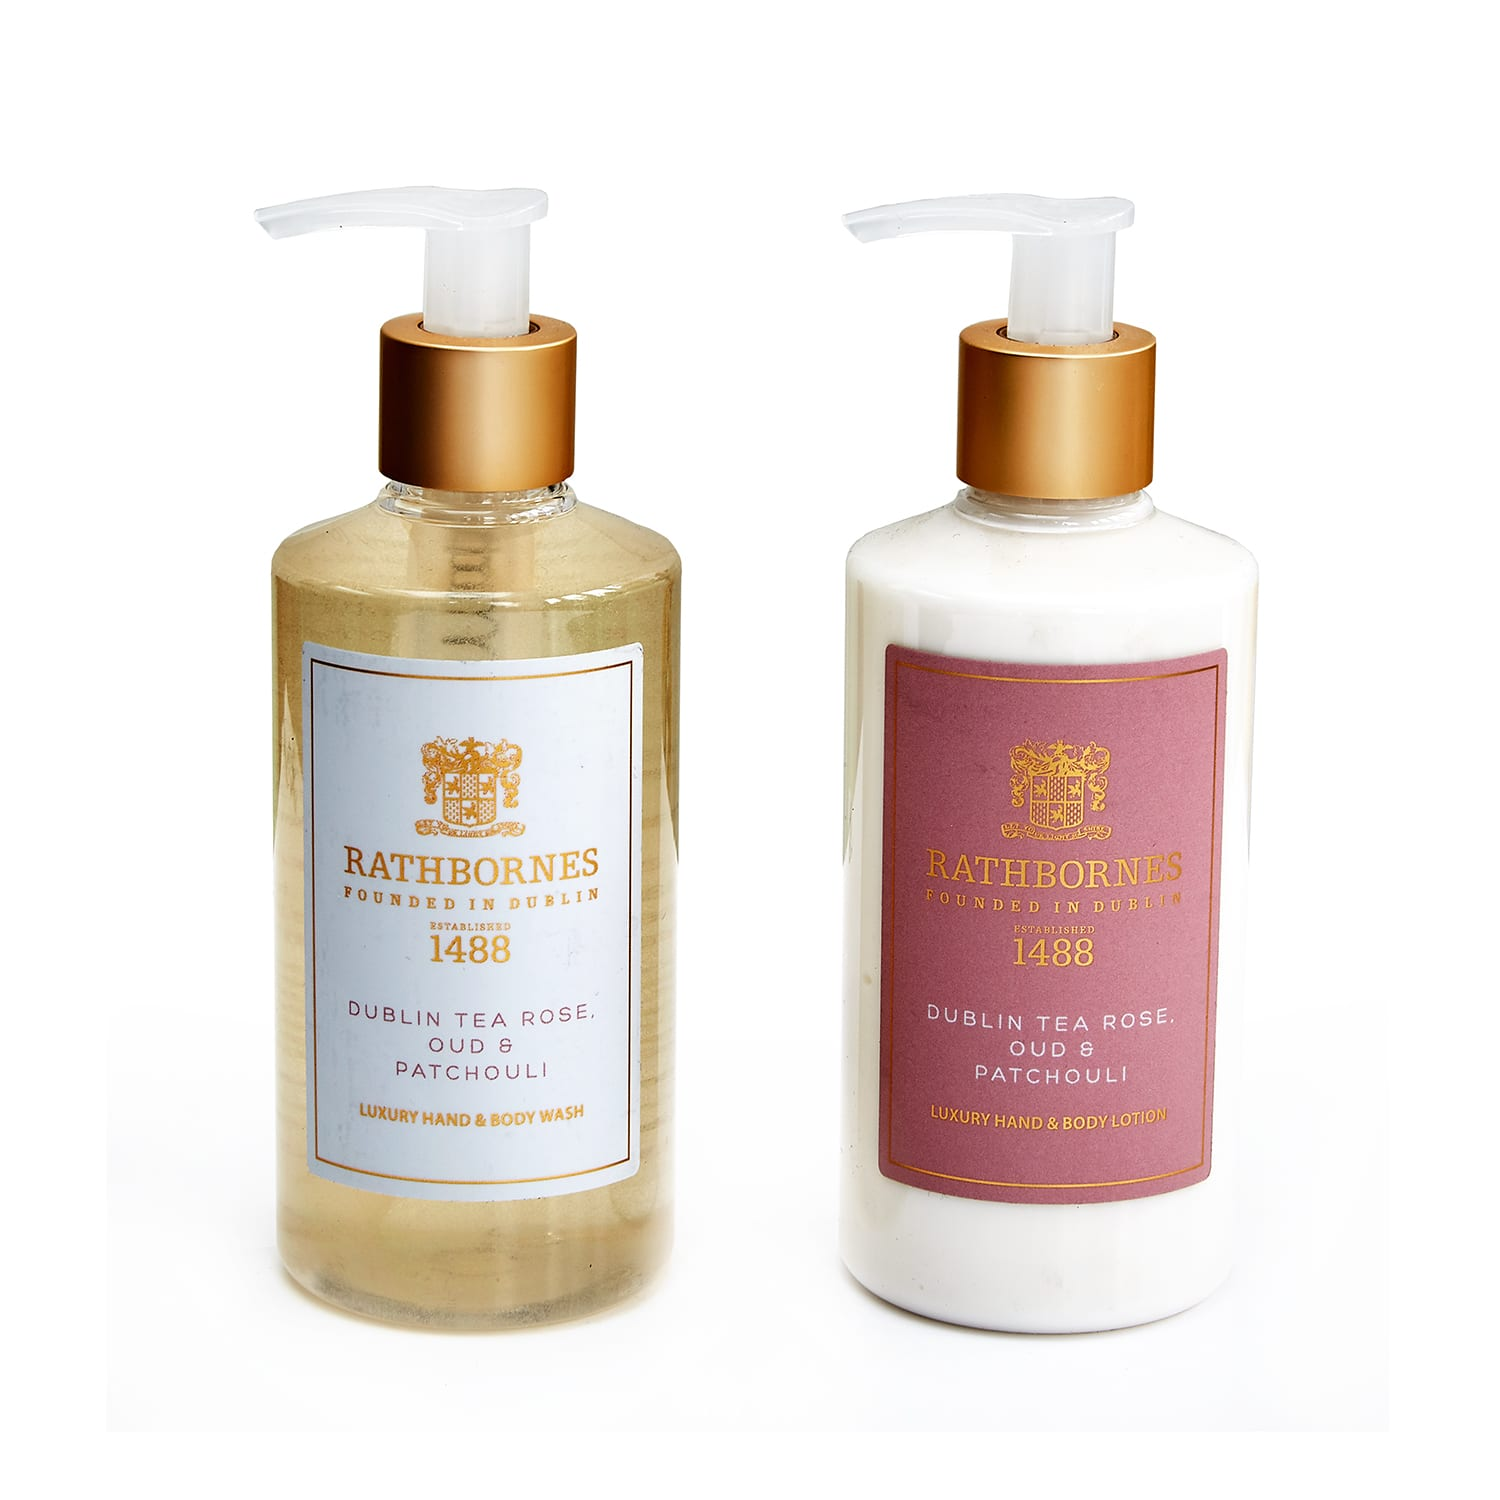 Rathbornes Dublin Tea Rose Hand & Body Lotion